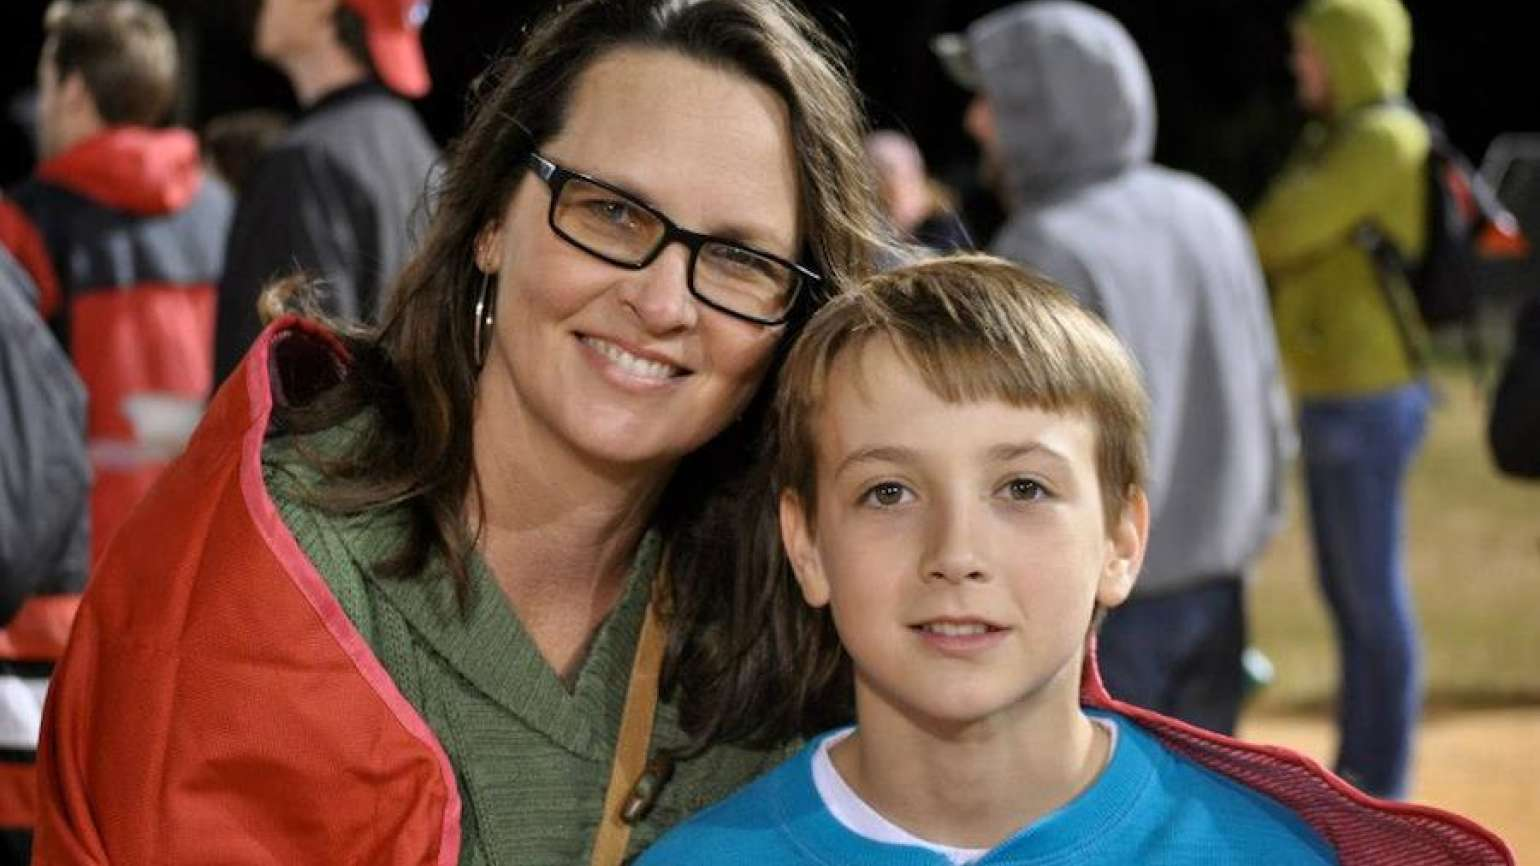 Patti and her son, Noah